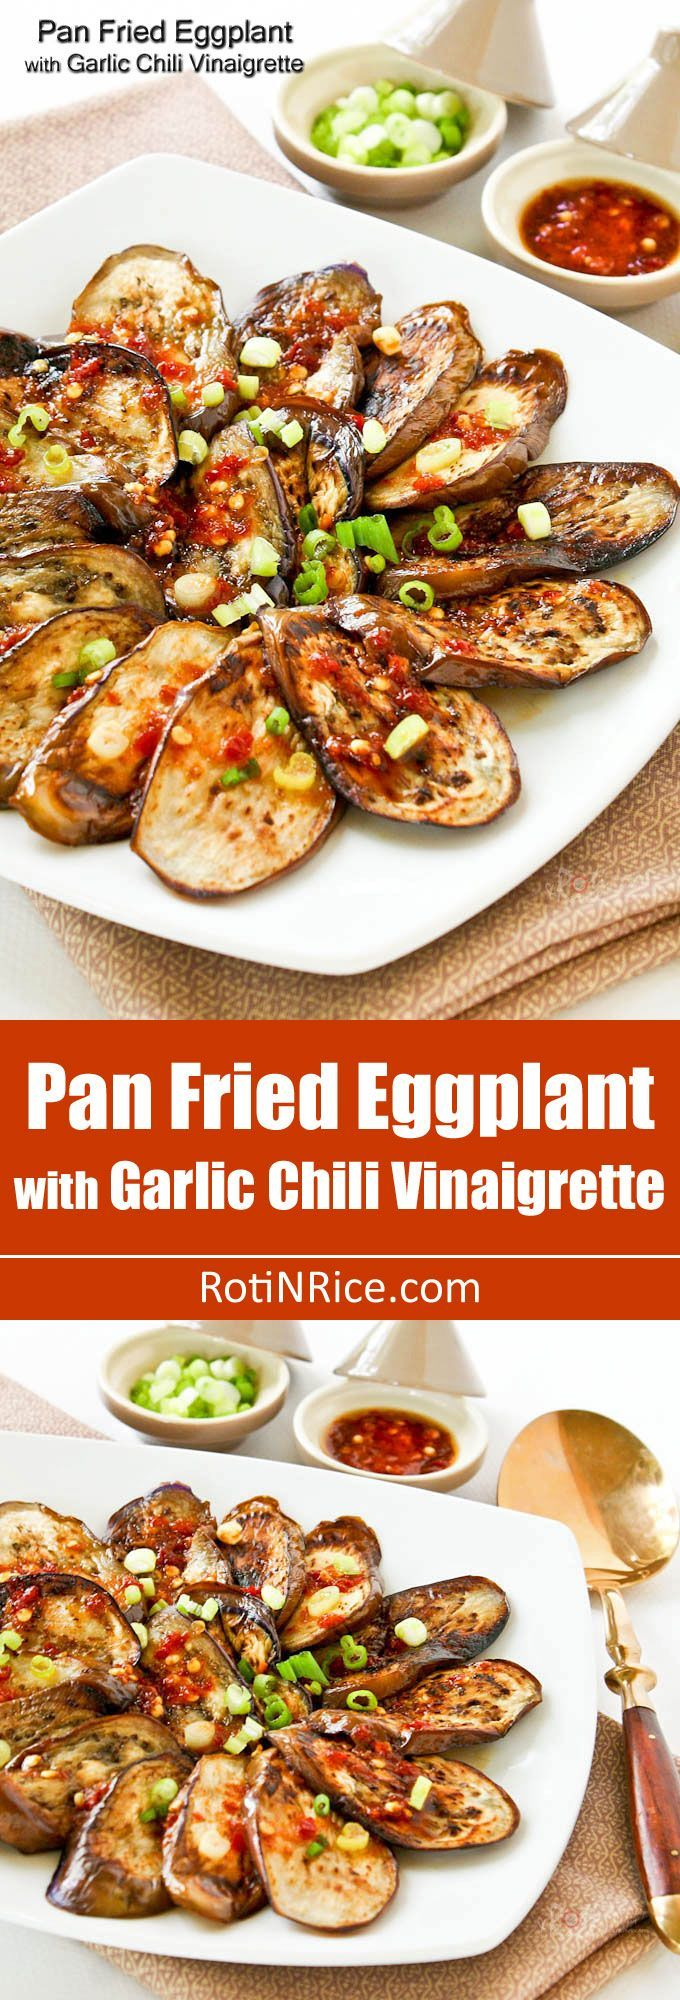 This Pan Fried Eggplant with Garlic Chili Vinaigrette takes less than 20 minutes to prepare. It is light, tasty, and goes well with a bowl of steamed rice. | http://RotiNRice.com